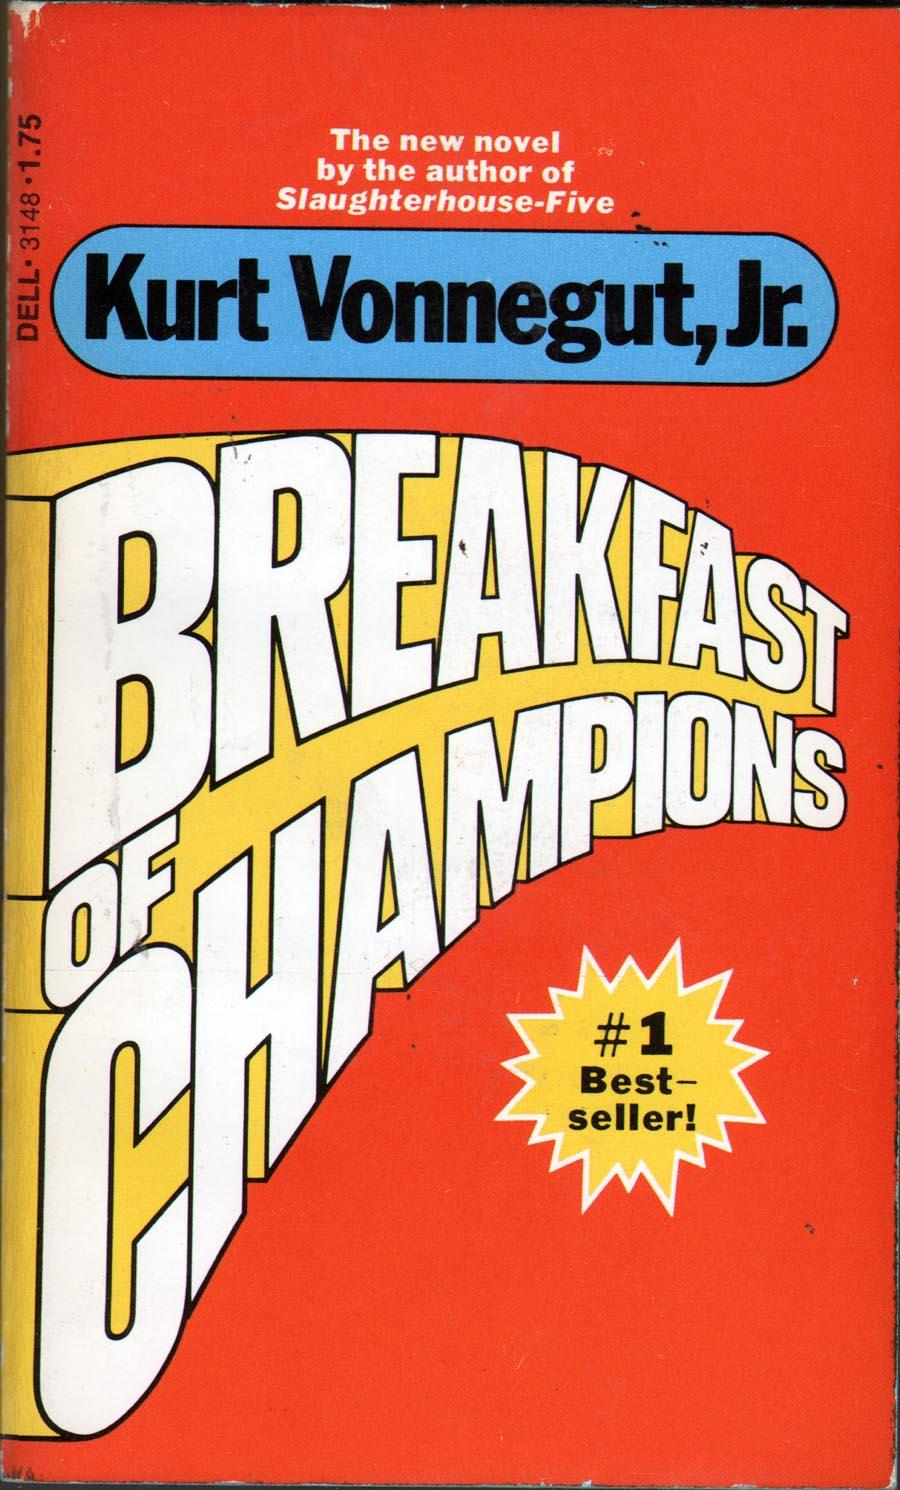 Breakfast of Champions, Kurt Vonnegut, Jr.